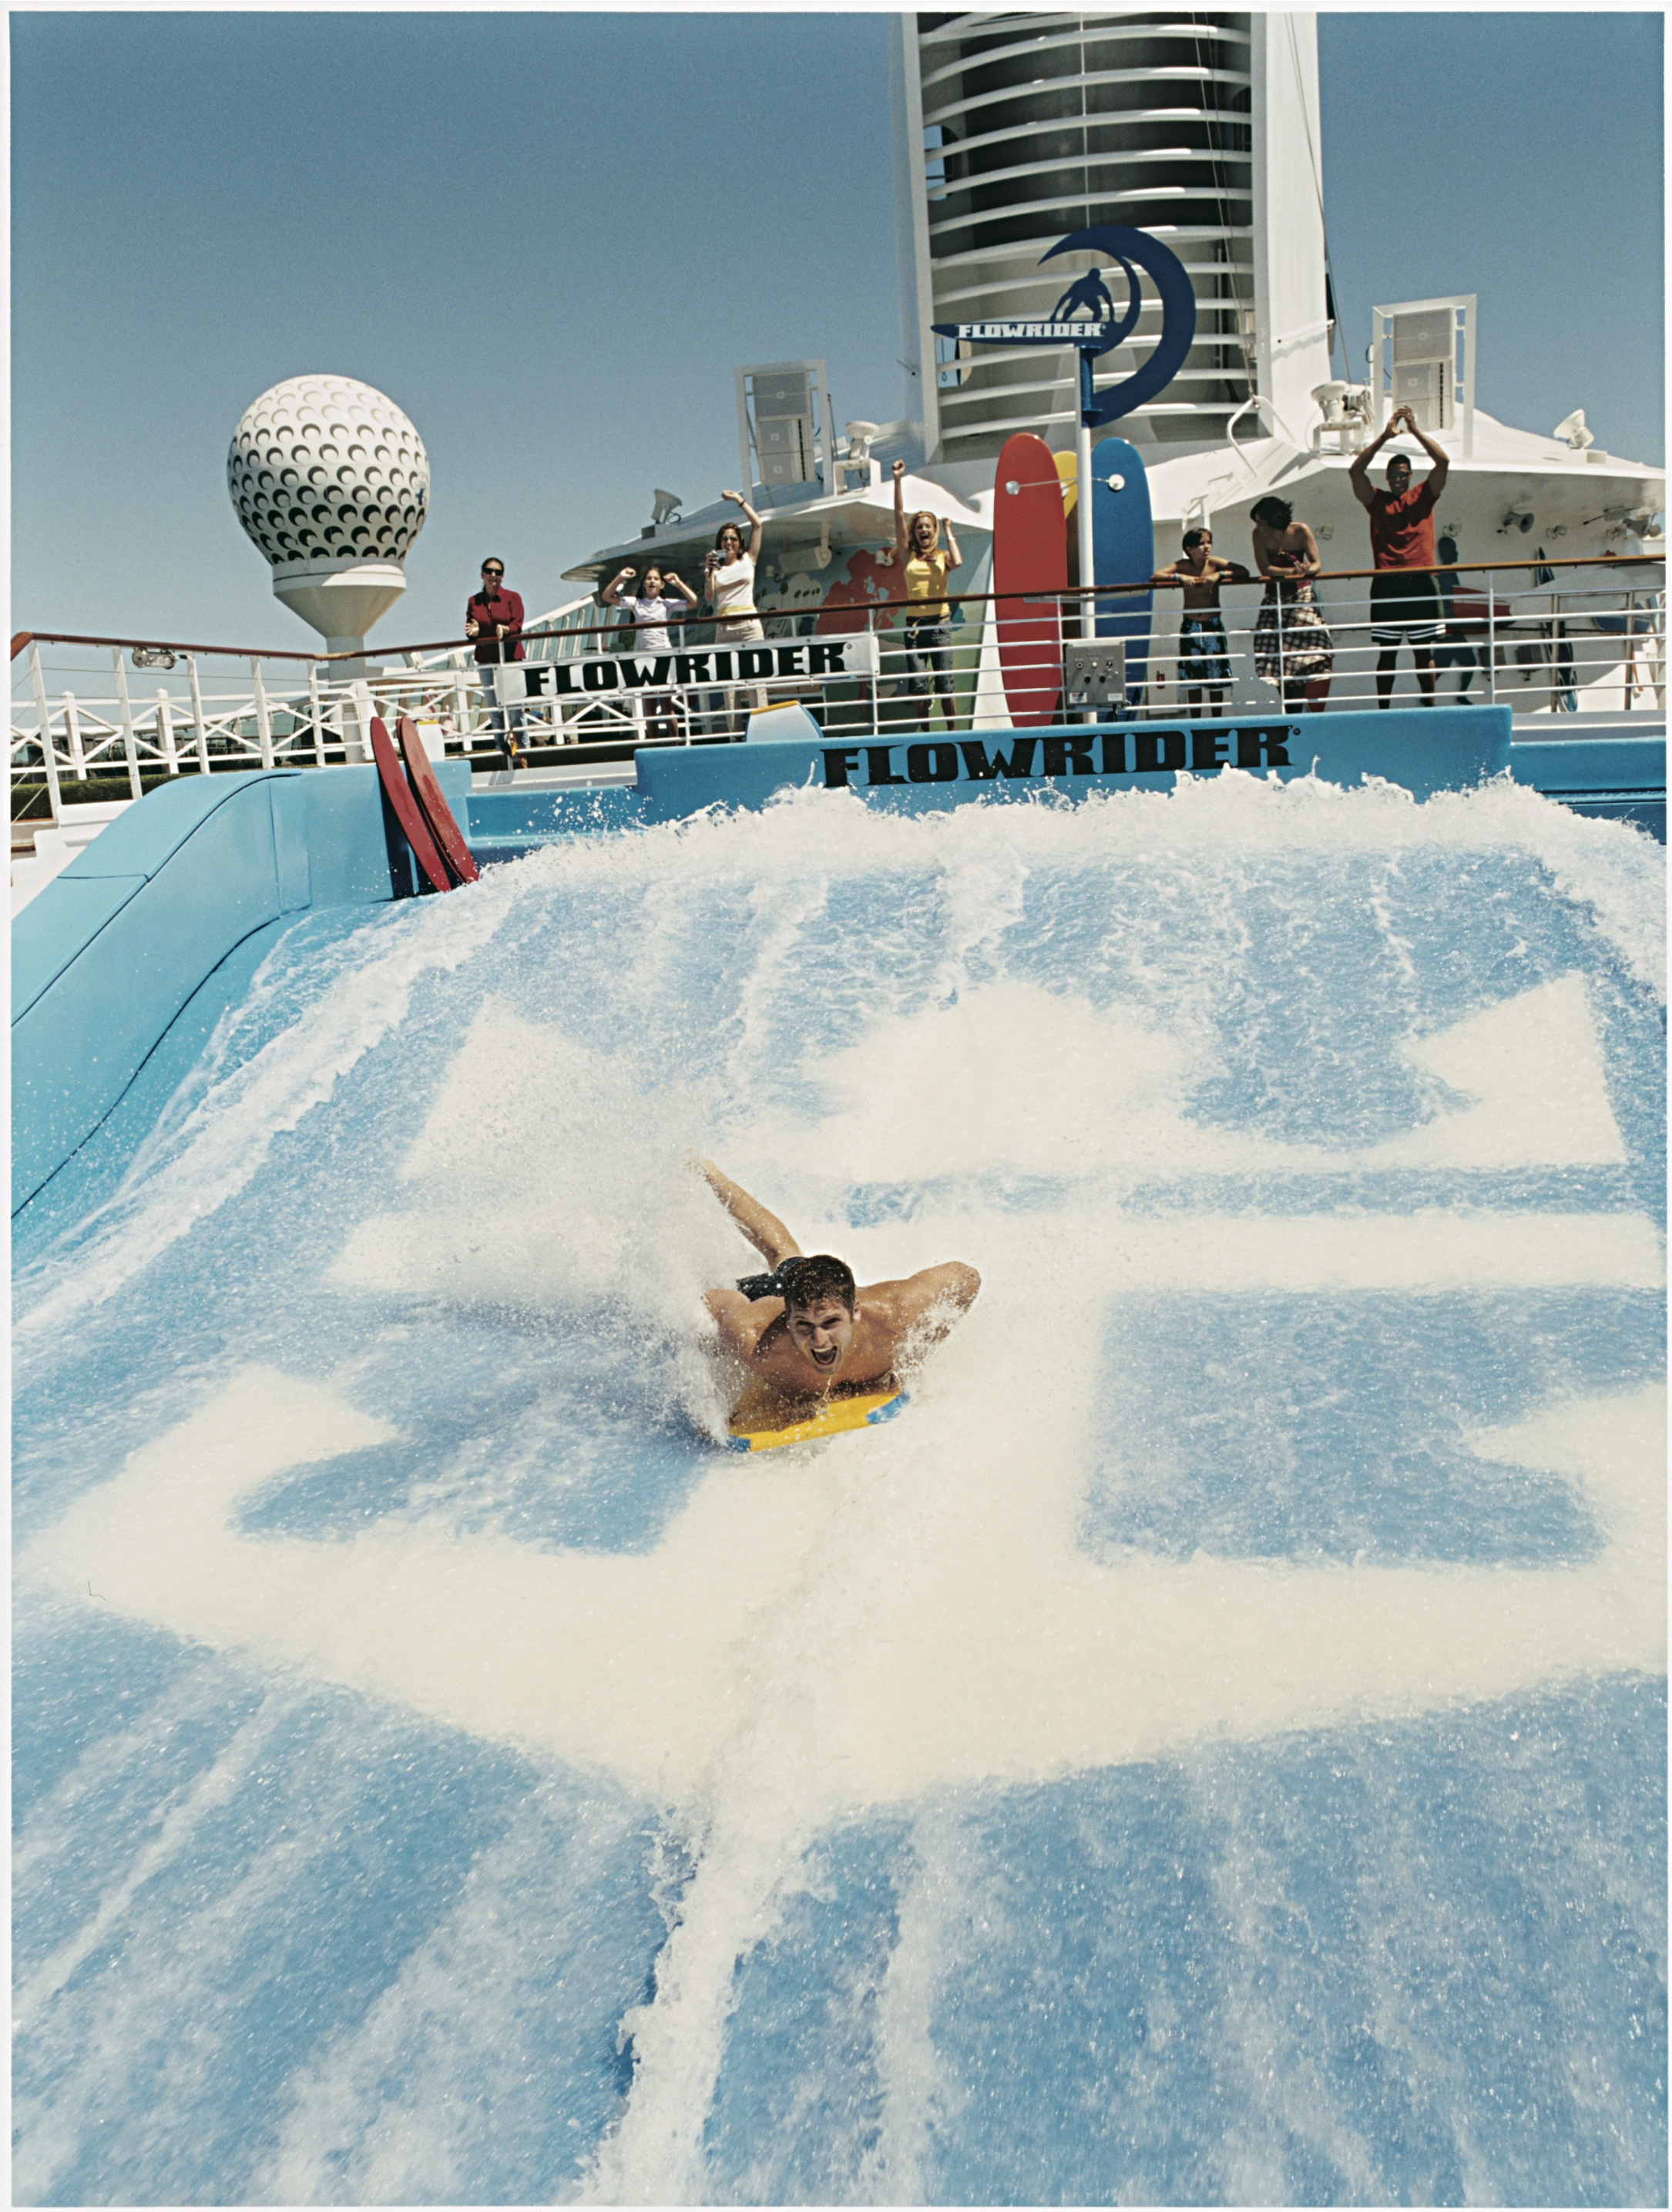 Royal Caribbean International Freedom of the Seas Exterior Flowrider 7.jpeg